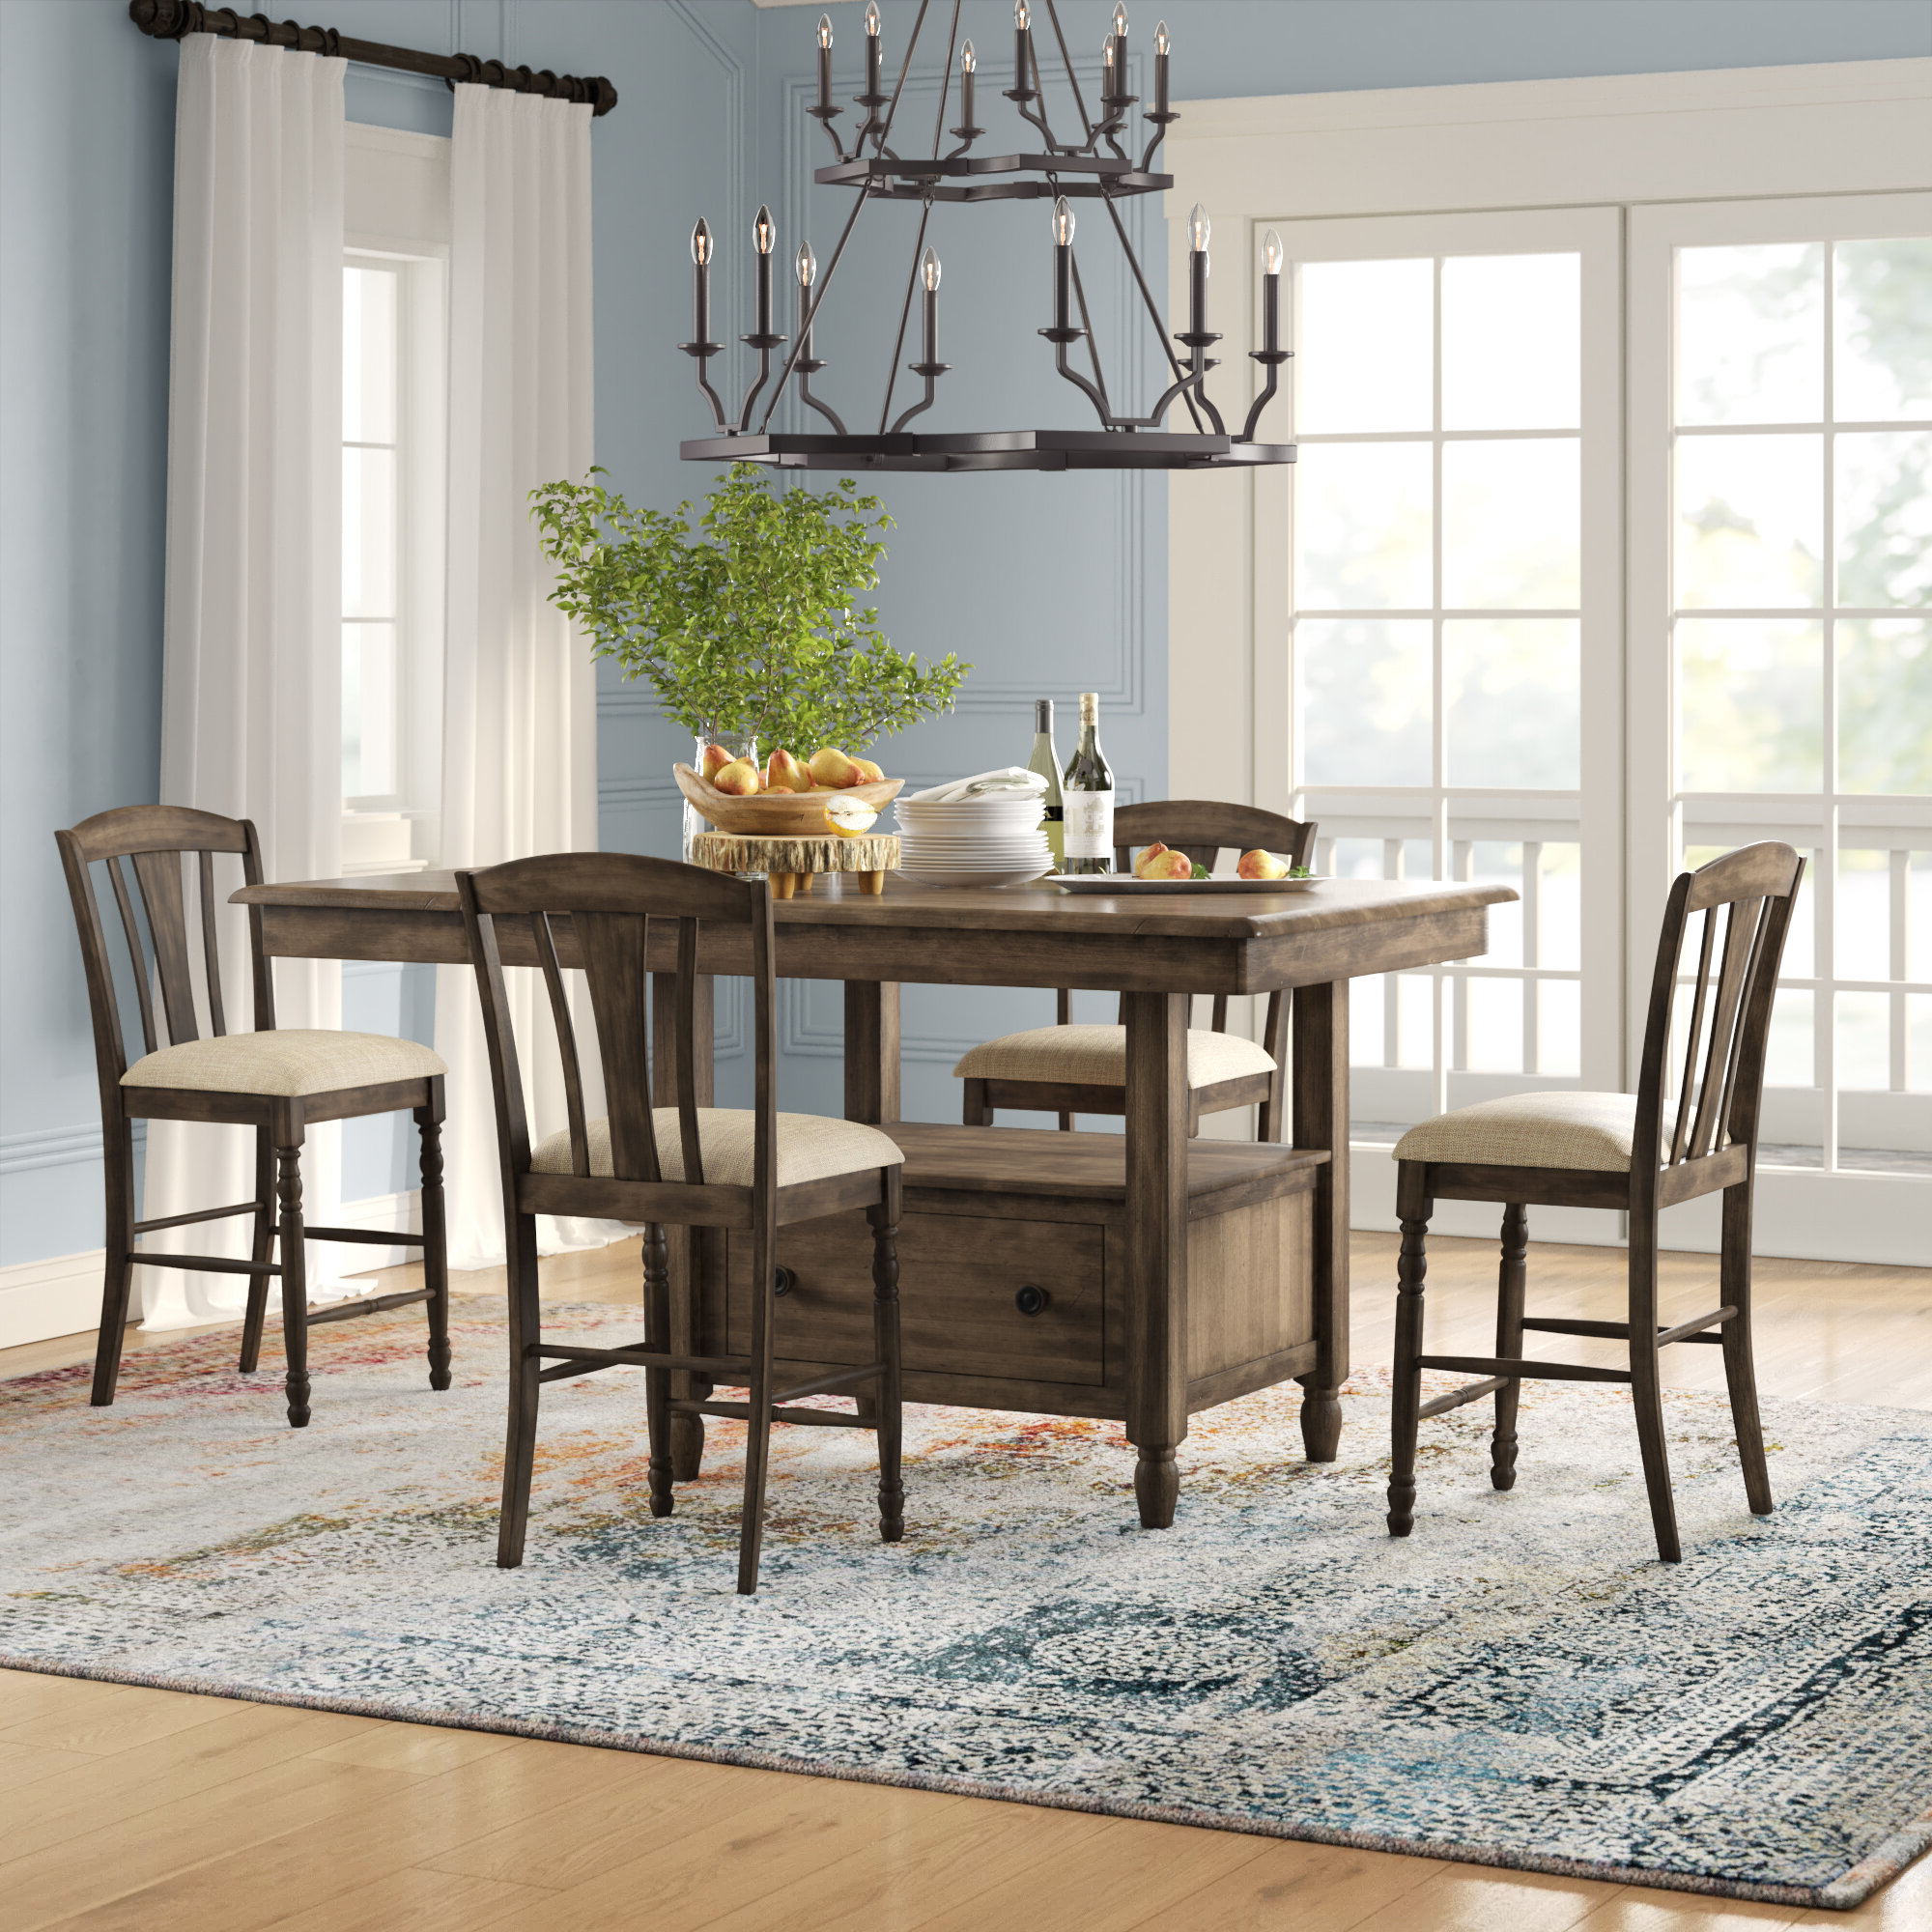 Perez 5 Piece Solid Wood Breakfast Nook Dining Set Inside Recent 5 Piece Breakfast Nook Dining Sets (View 6 of 20)